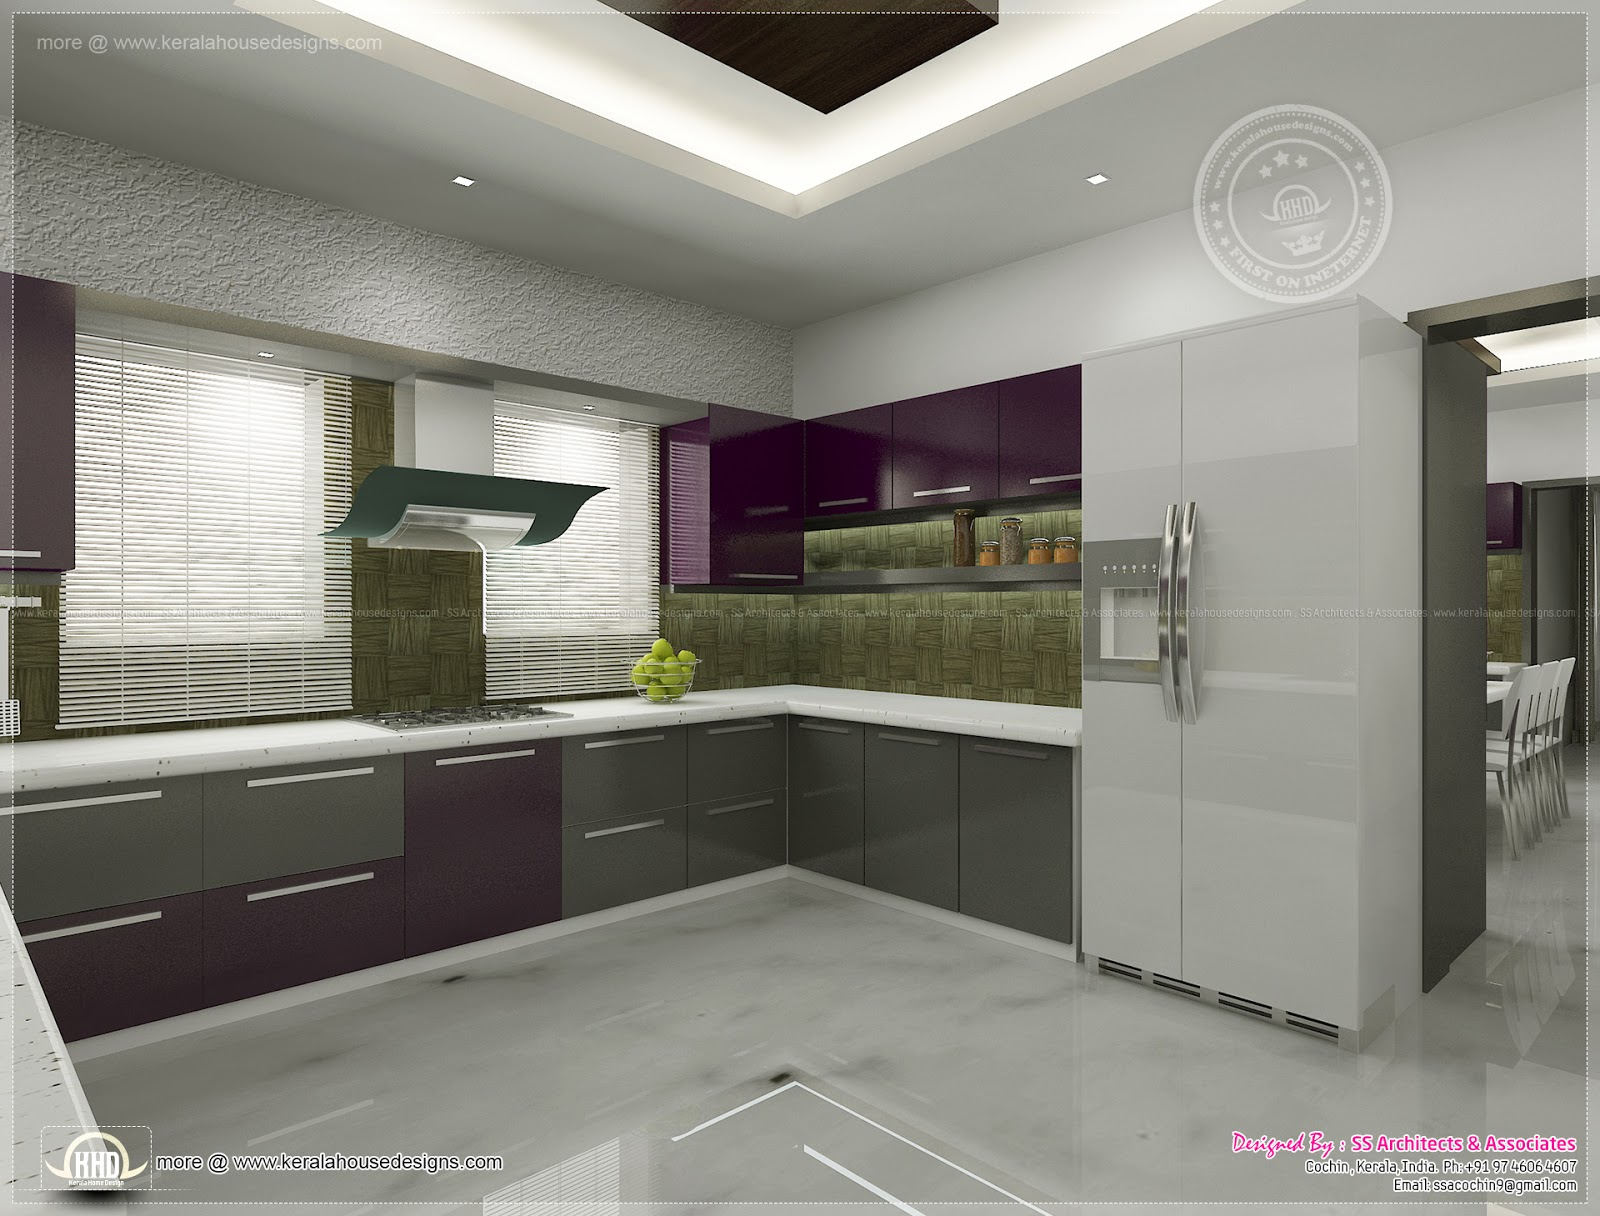 Kitchen interior views by ss architects cochin home kerala plans - Kitchen interior designing ...